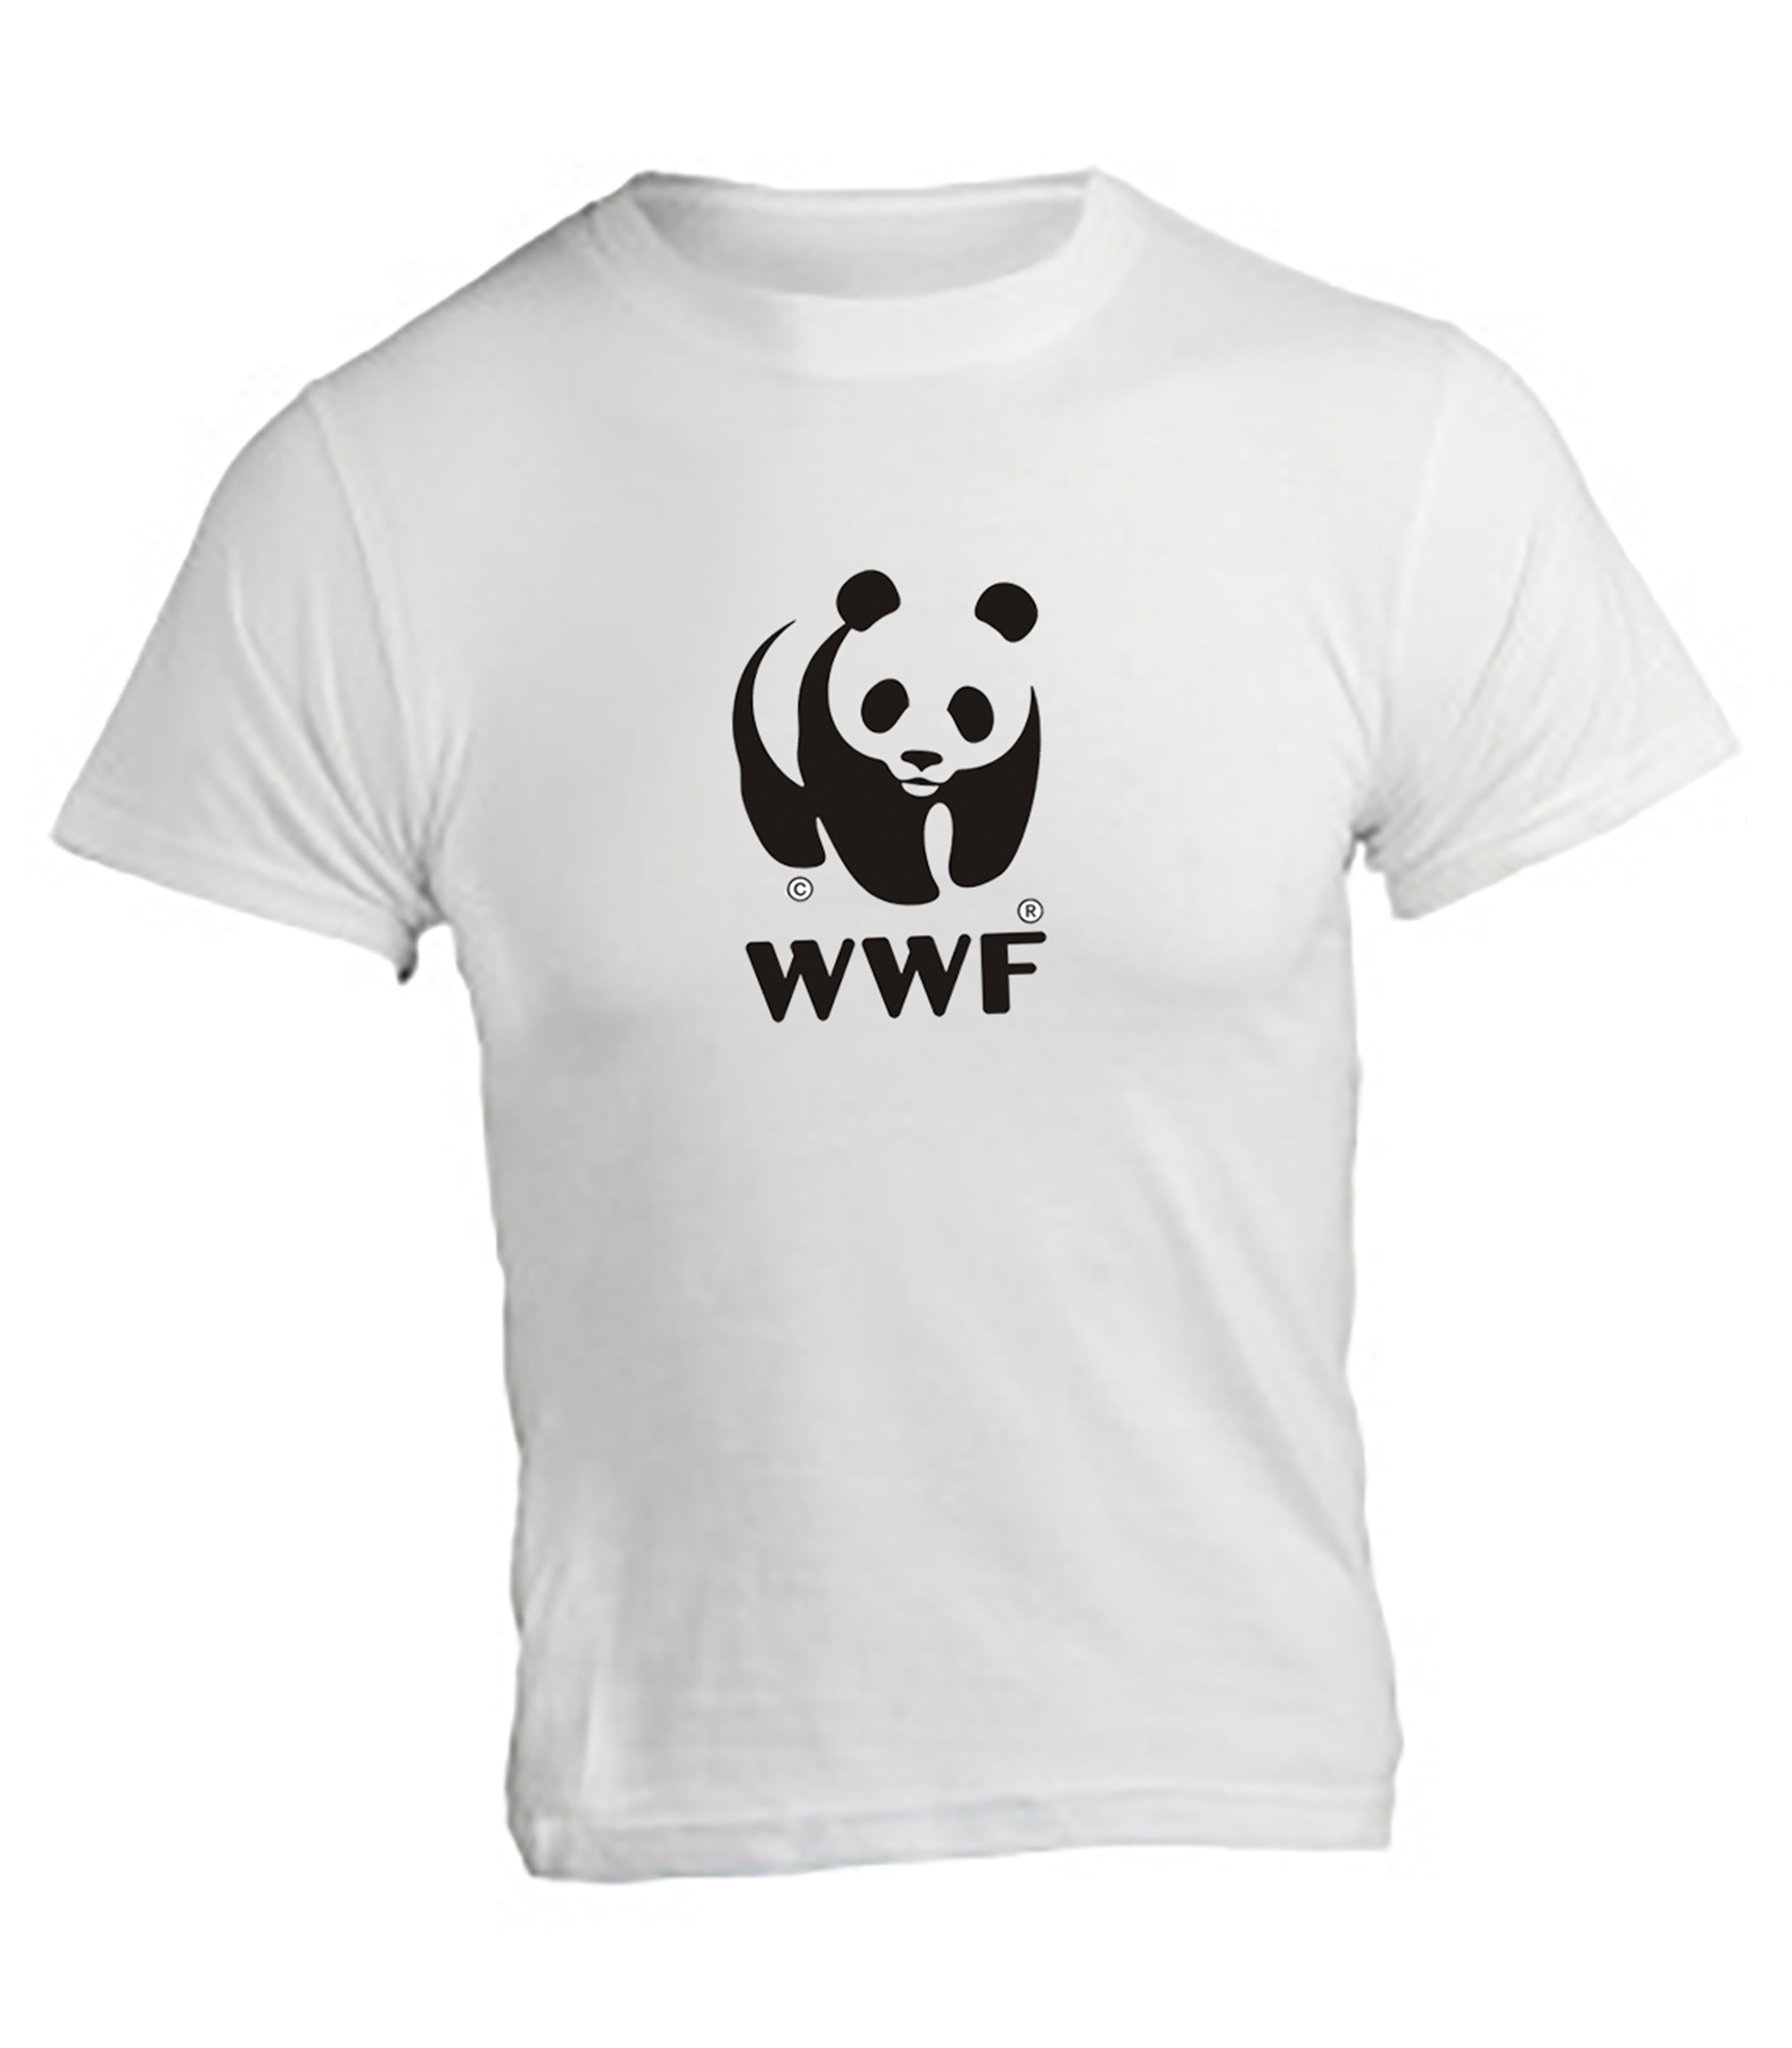 b94cb35d8fe4b T-shirt de sport femme WWF - MOVE FOR NATURE - WWF-Belgium Shop